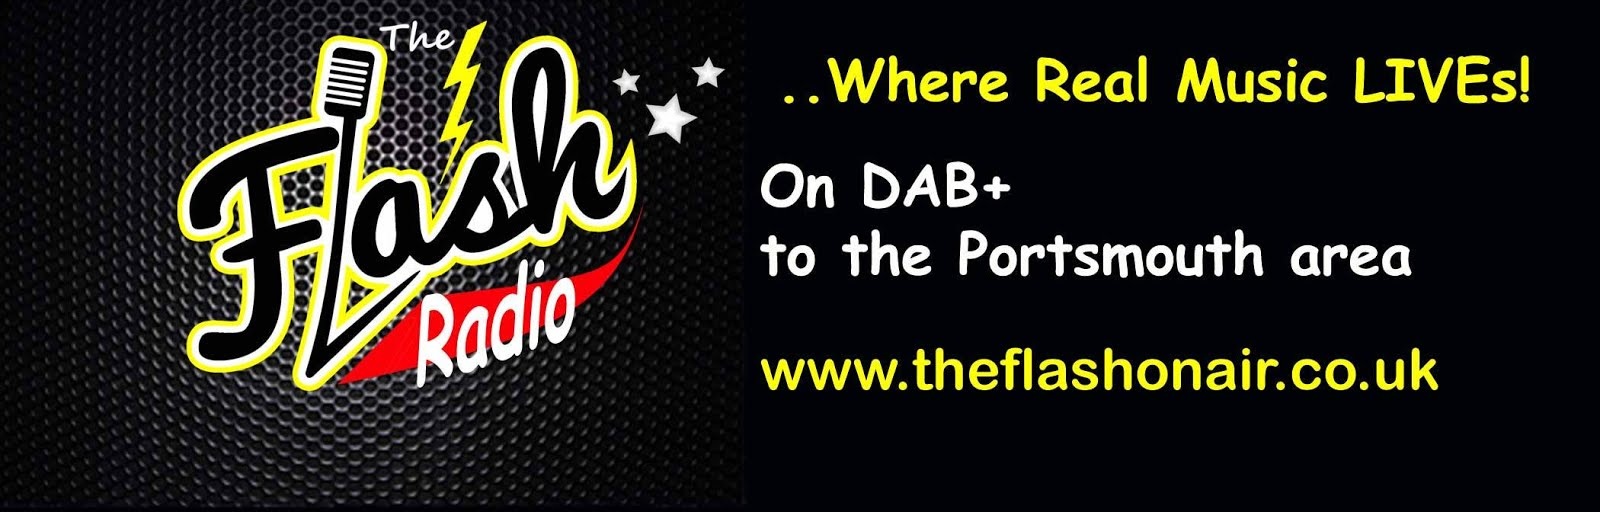 www.theflashonair.co.uk